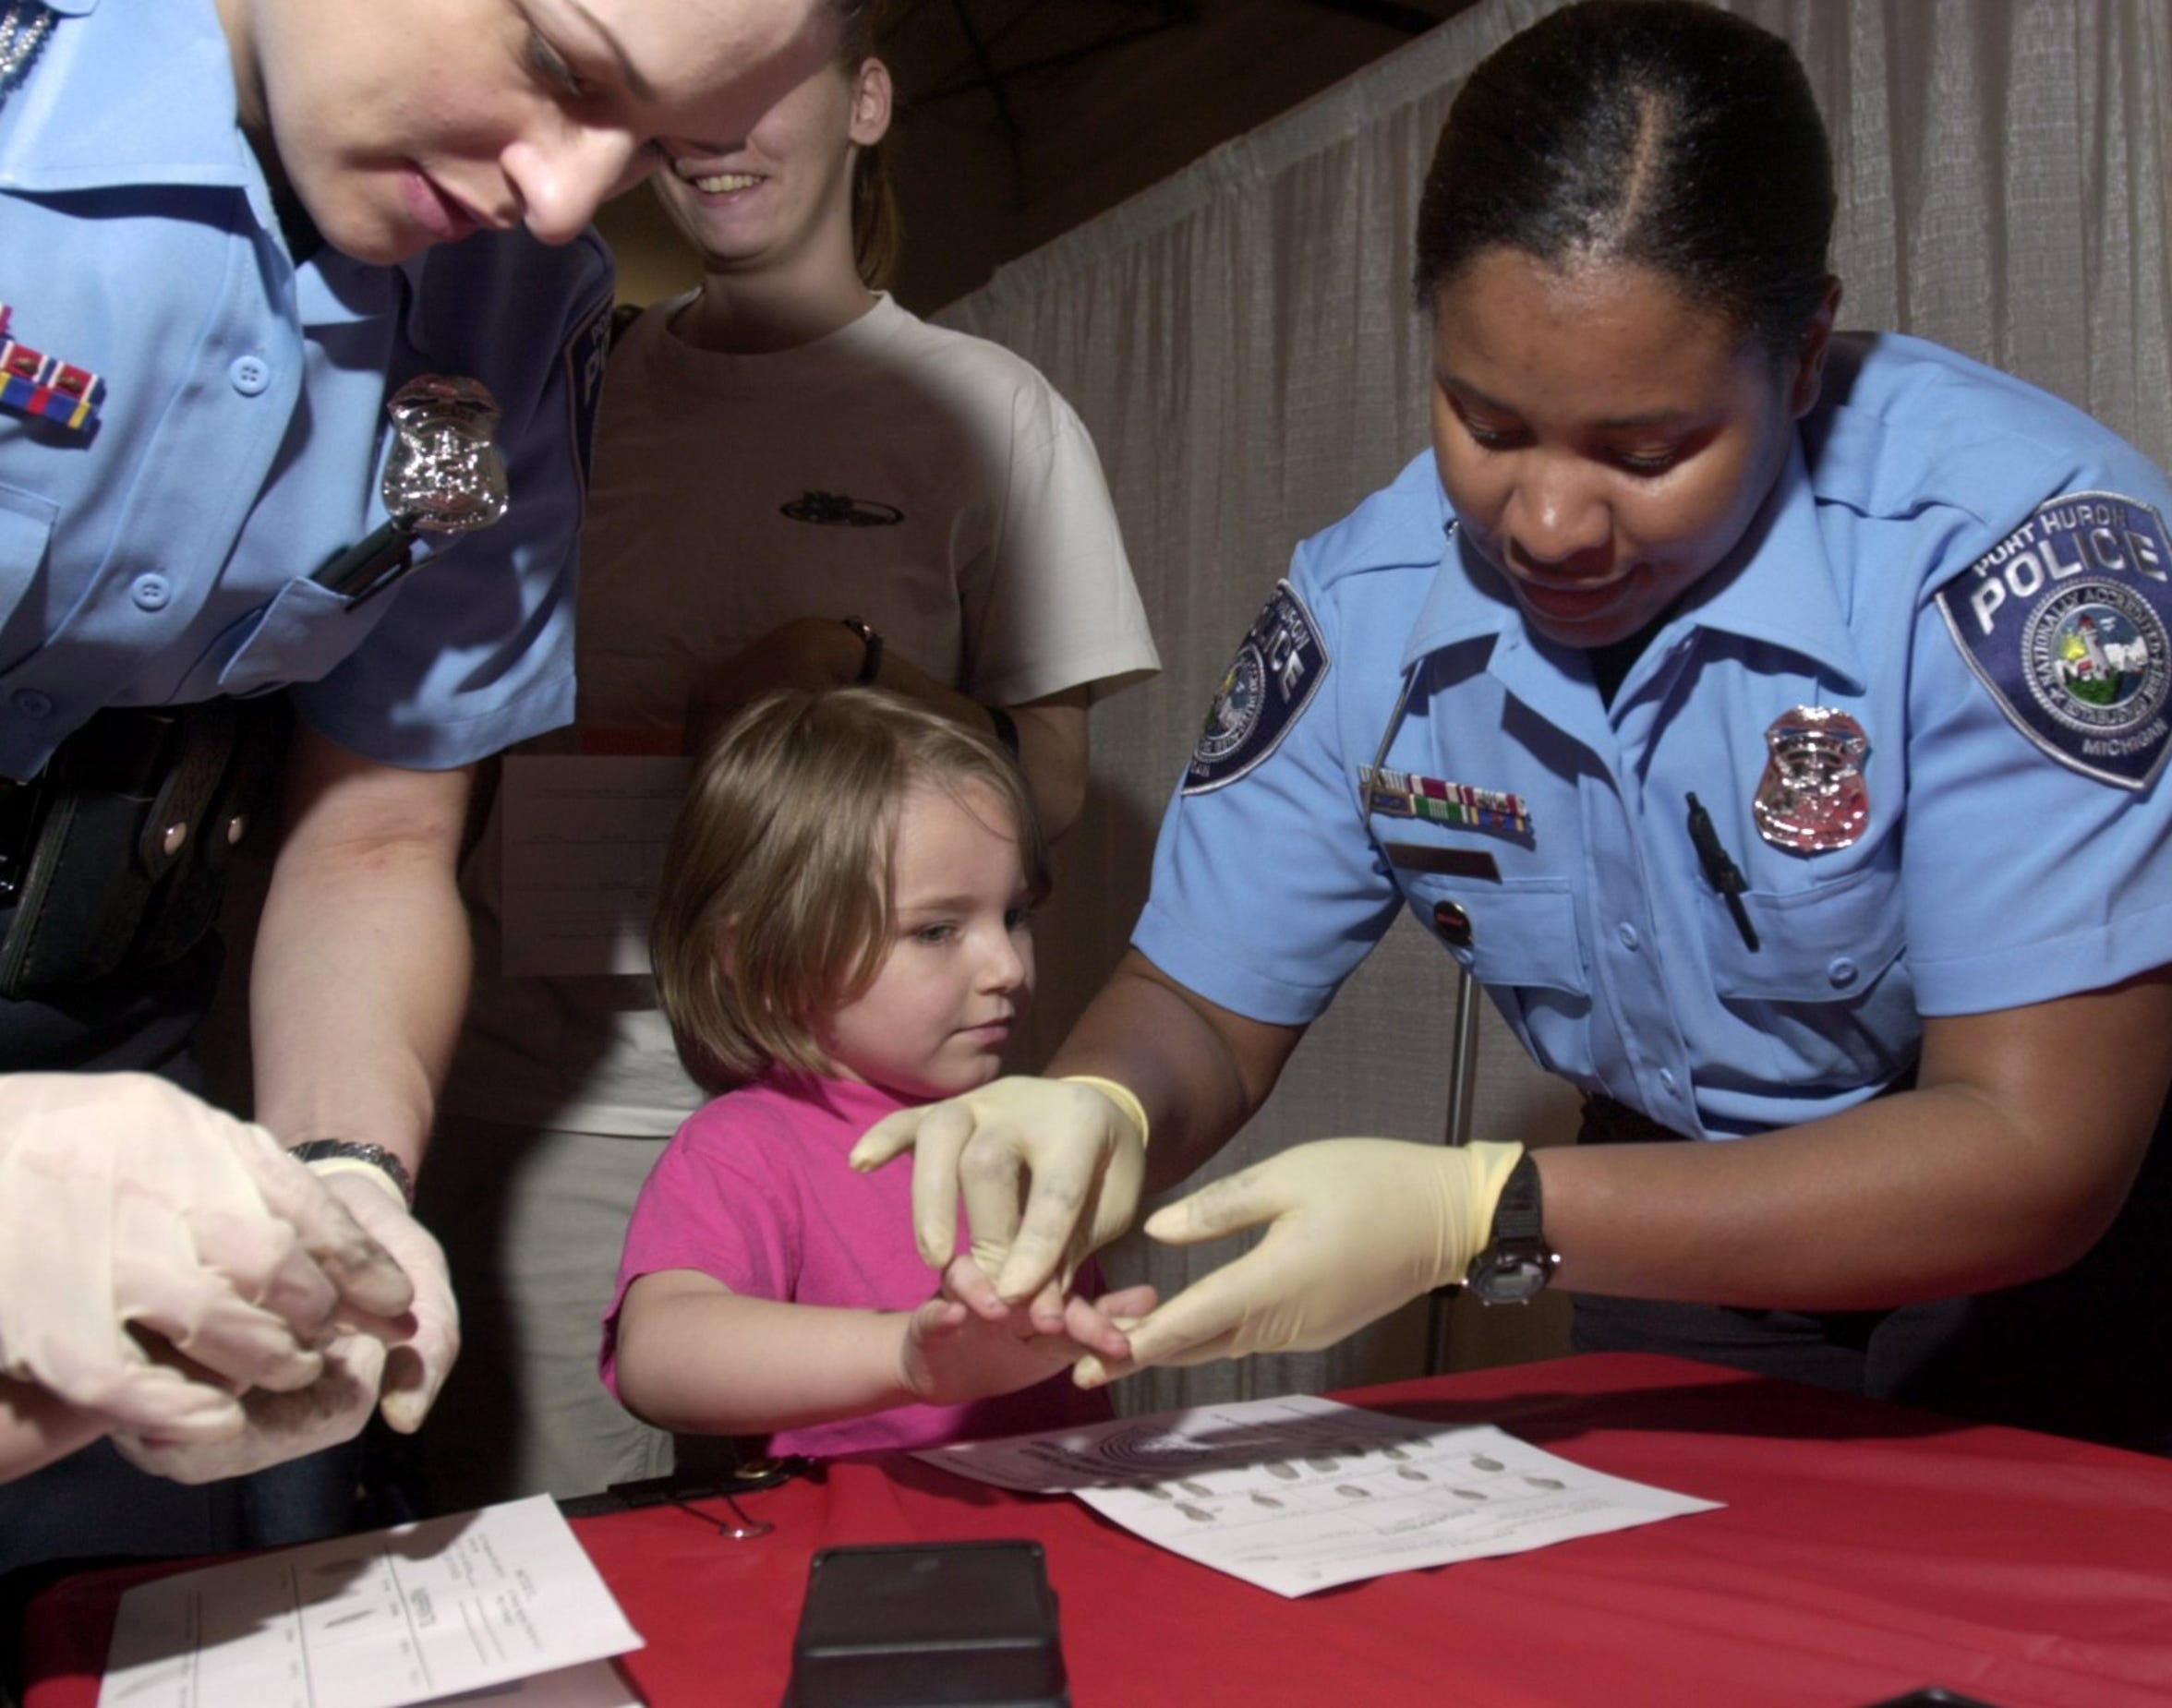 Sgt. Karen Brisby, right, then a Drug Abuse Resistance Education officer, fingerprints a small girl during an event at McMorran Place in 2003, as Capt. Marcy Kuehn, then a community service resource officer, works with another child.